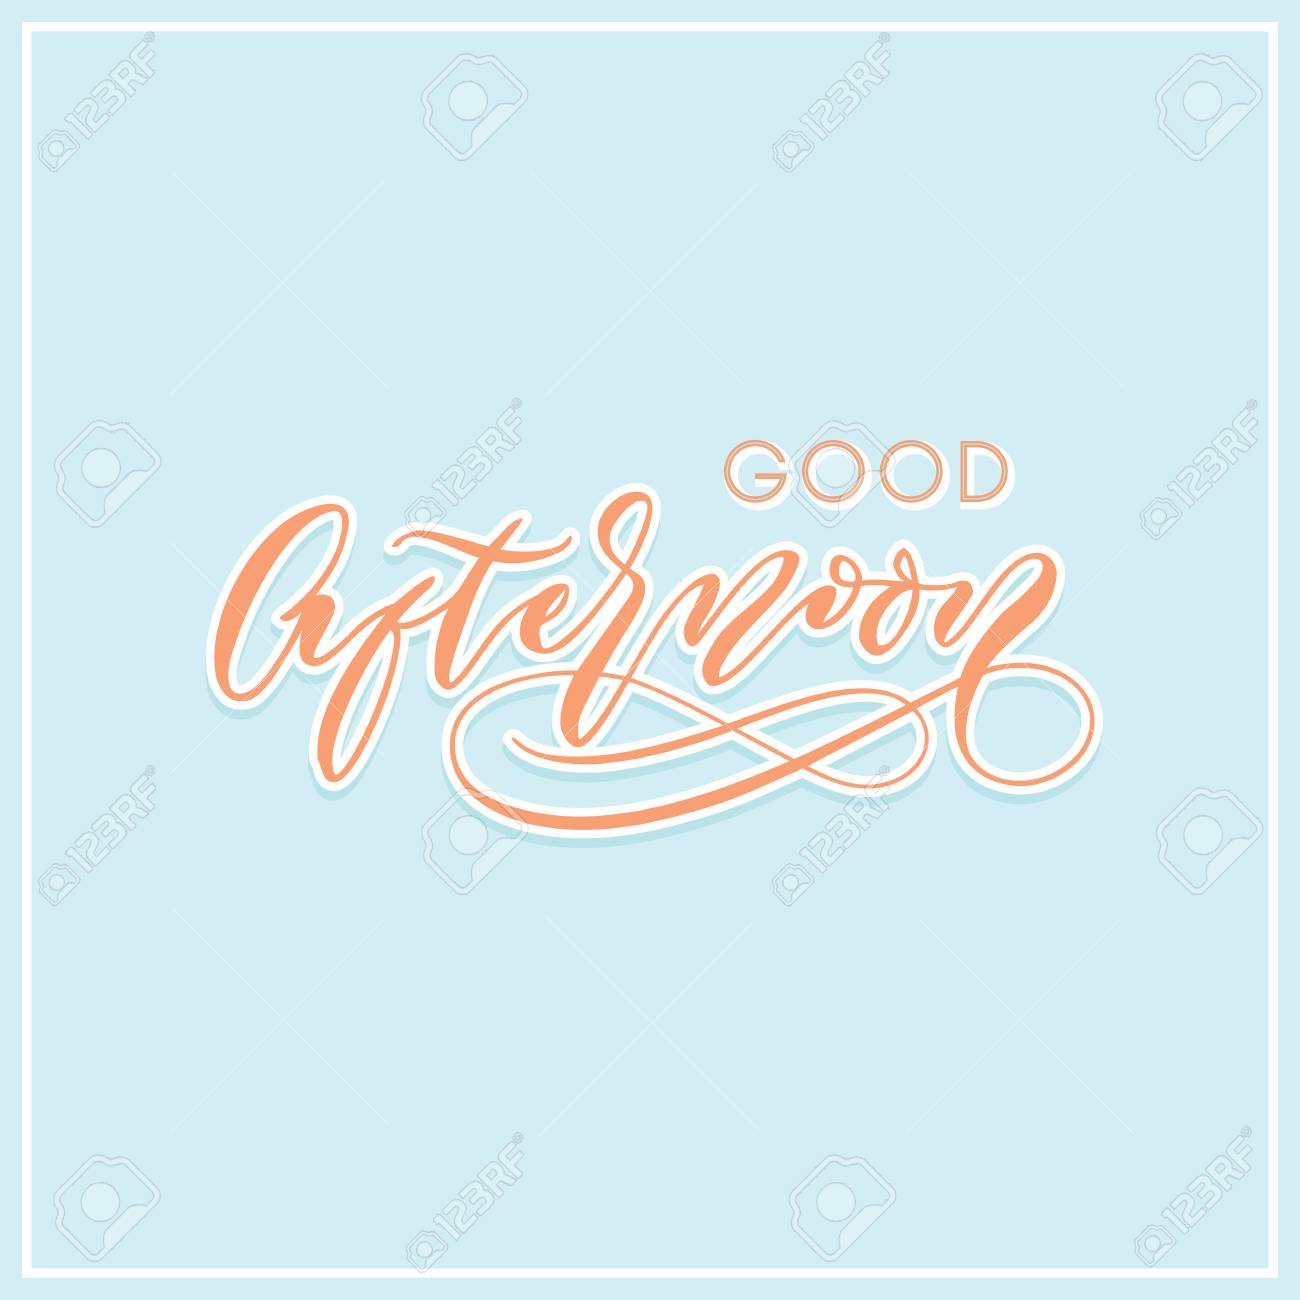 Good Afternoon Modern Calligraphy Typography Greeting Card Royalty